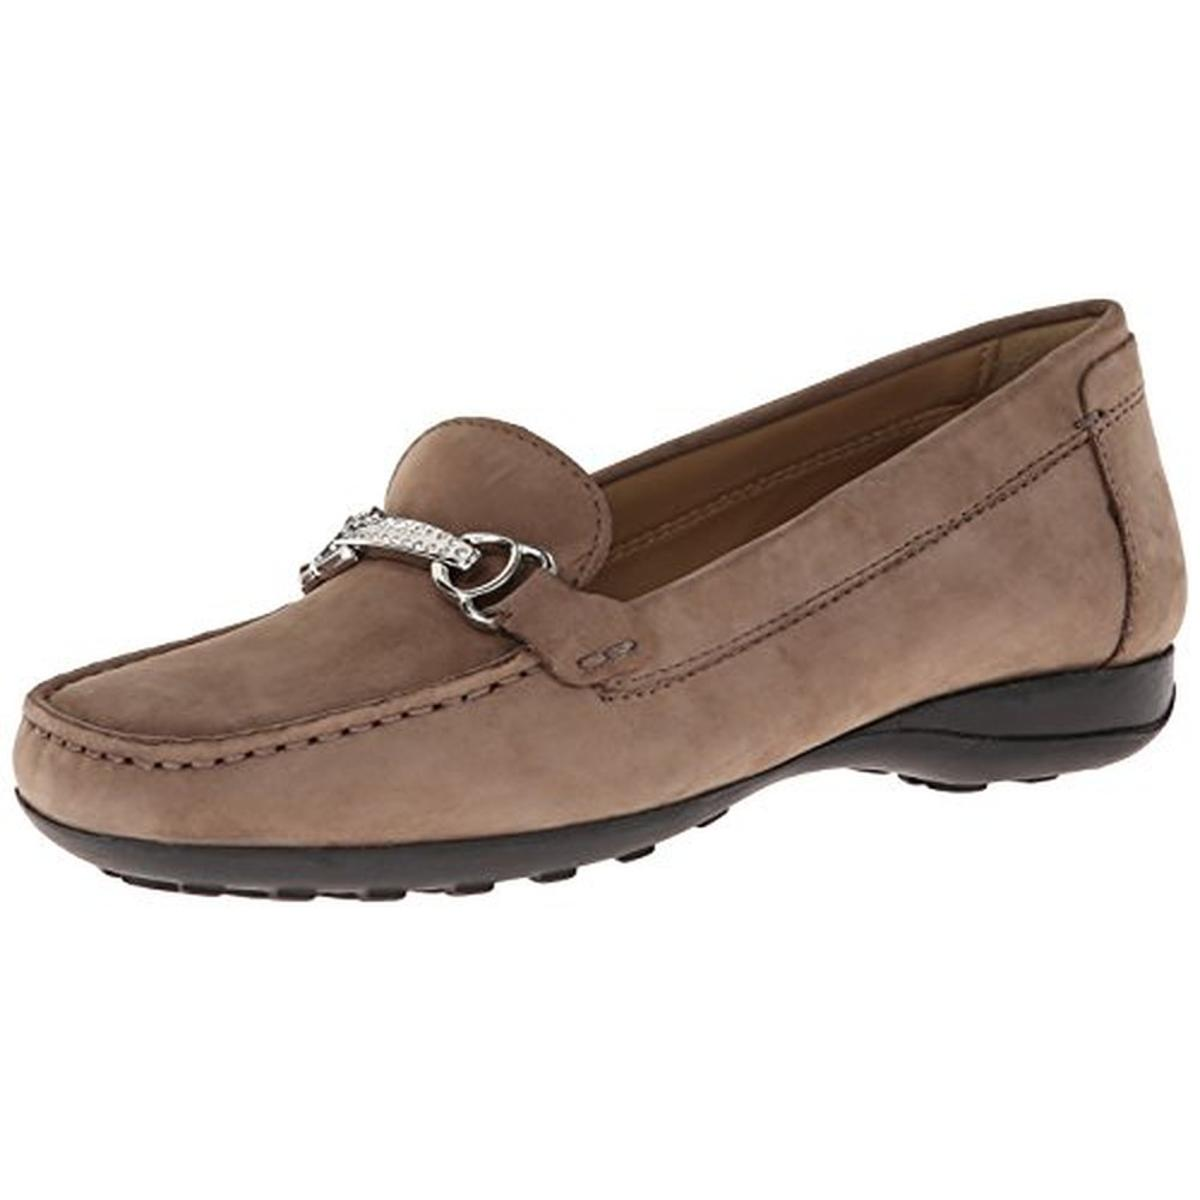 Beautiful Finally, Moms Have To Run Around So Flats Like Gucci Loafers Are A Must  But